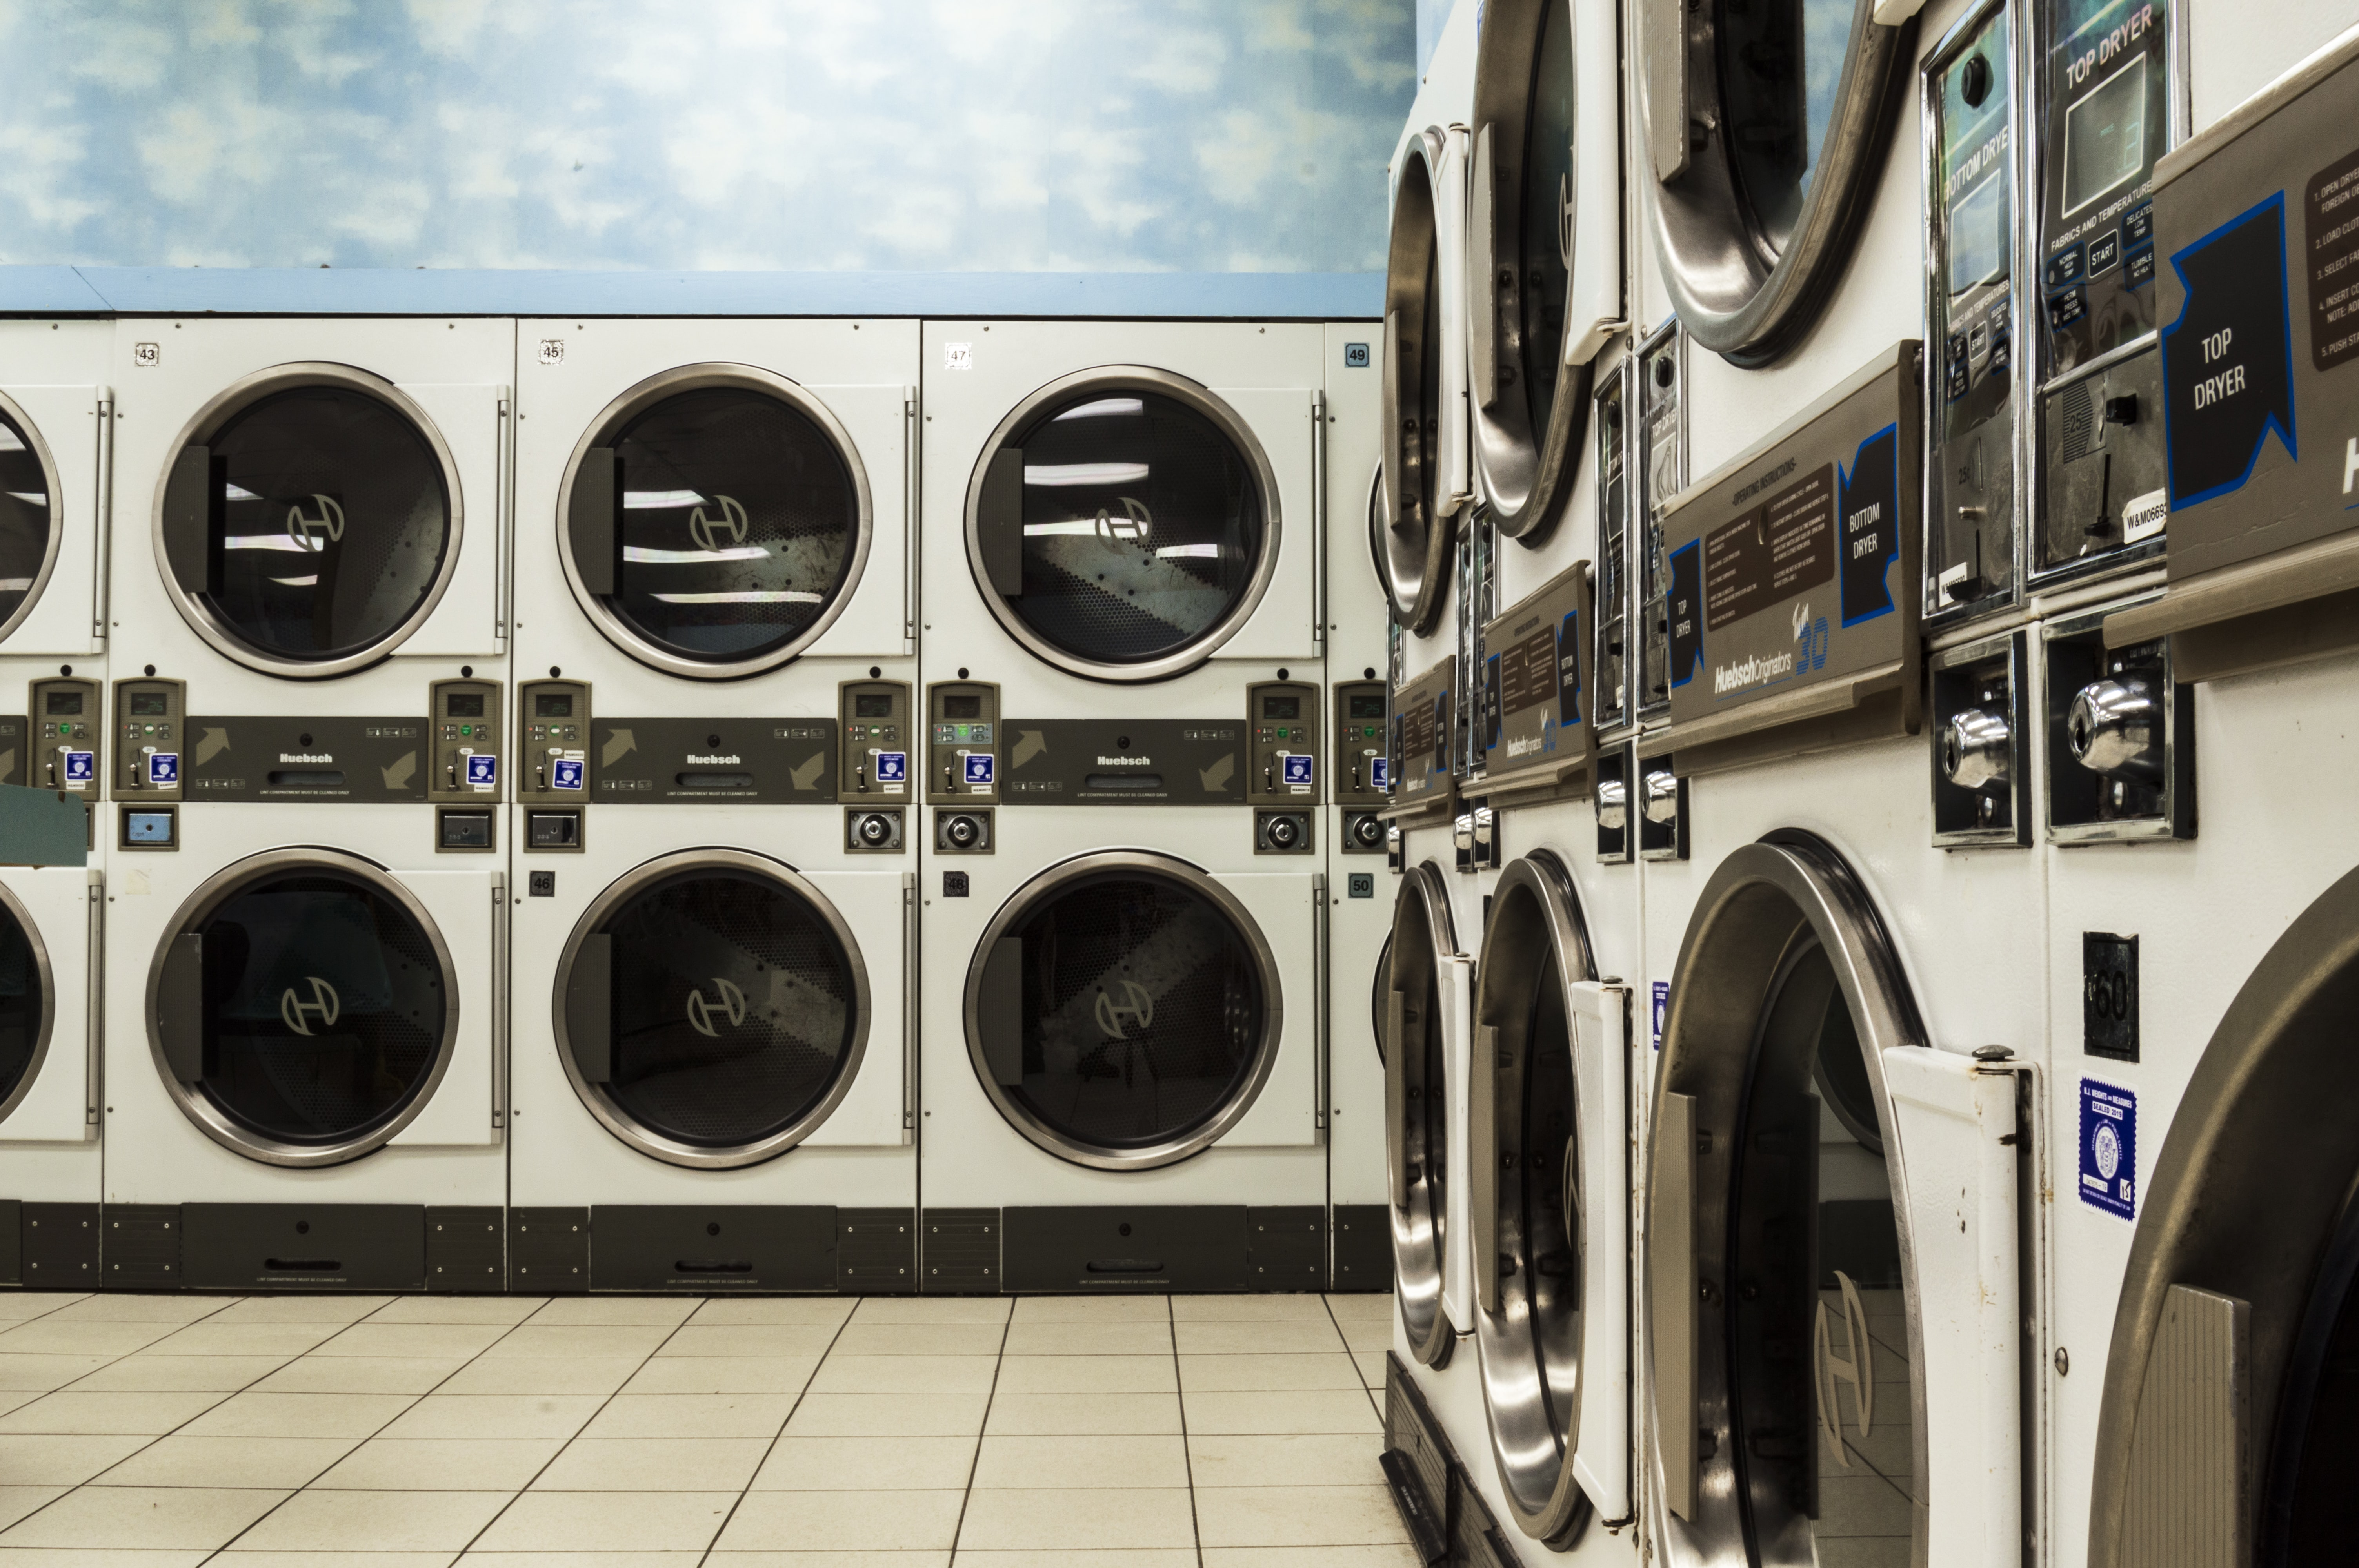 white washer and dryer laundry centers on white floor tiles